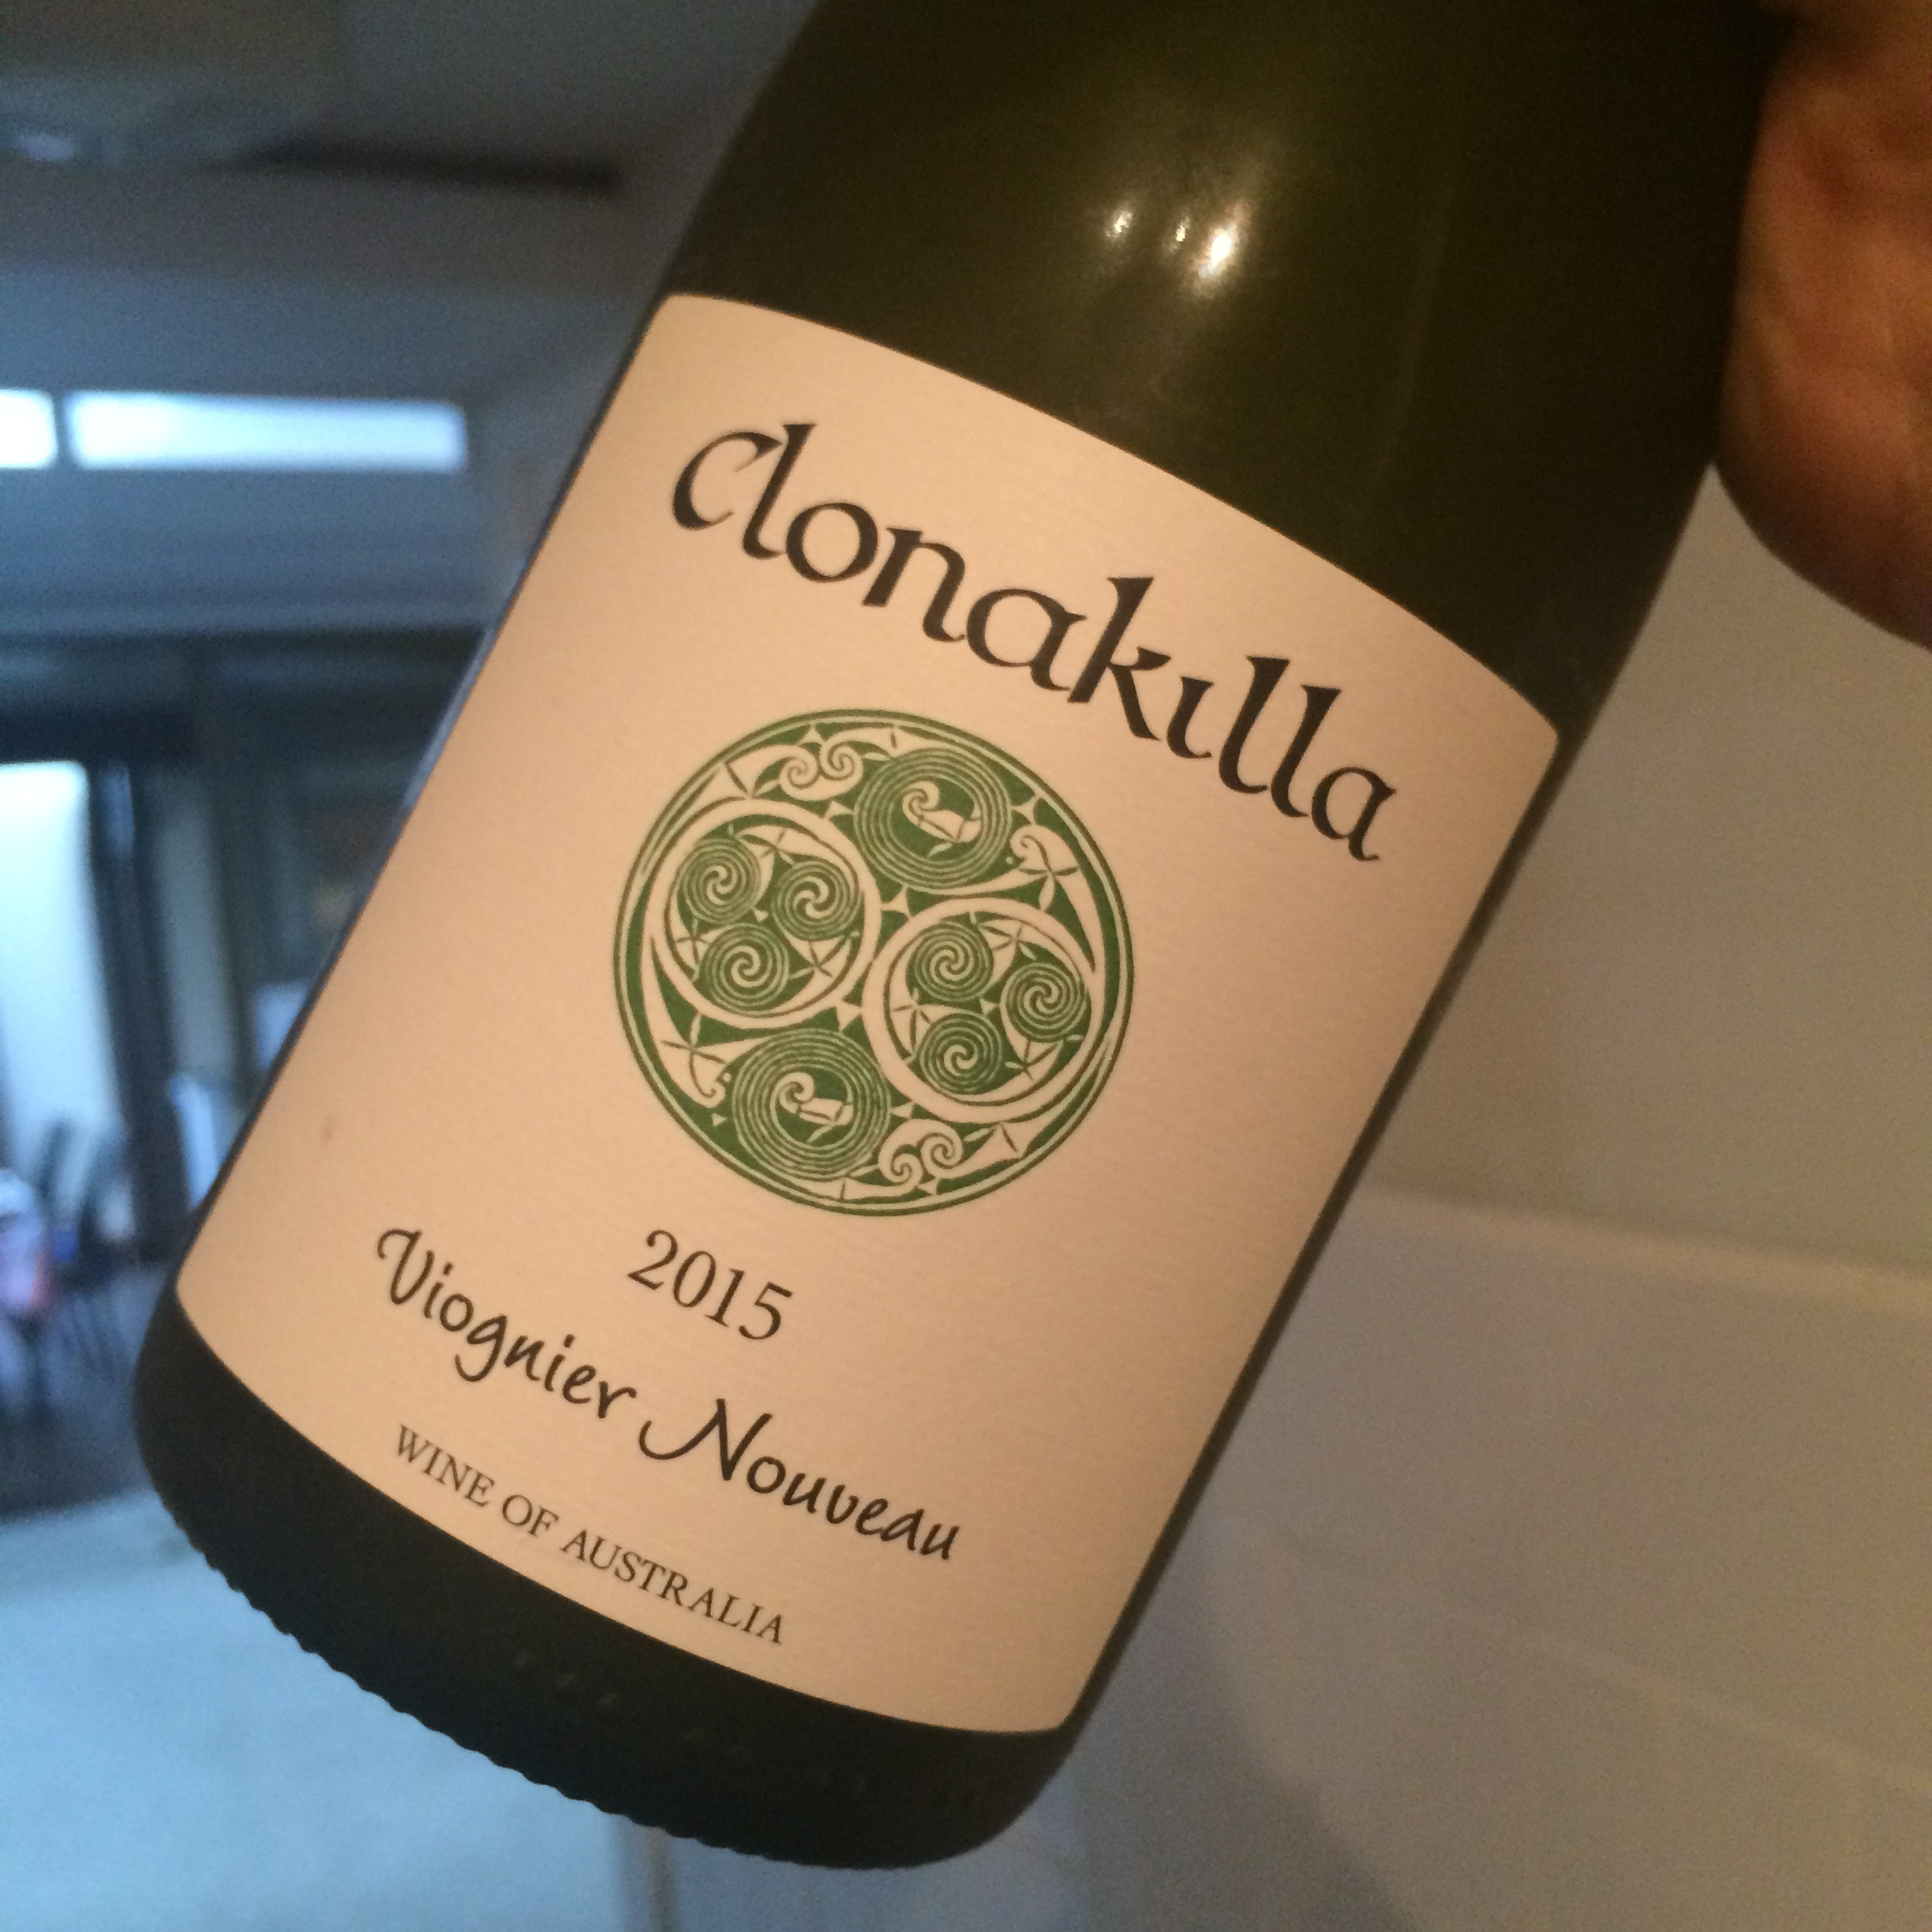 A new, lighter style of Viognier by Clonakilla ($24 from Dan Murphy's)